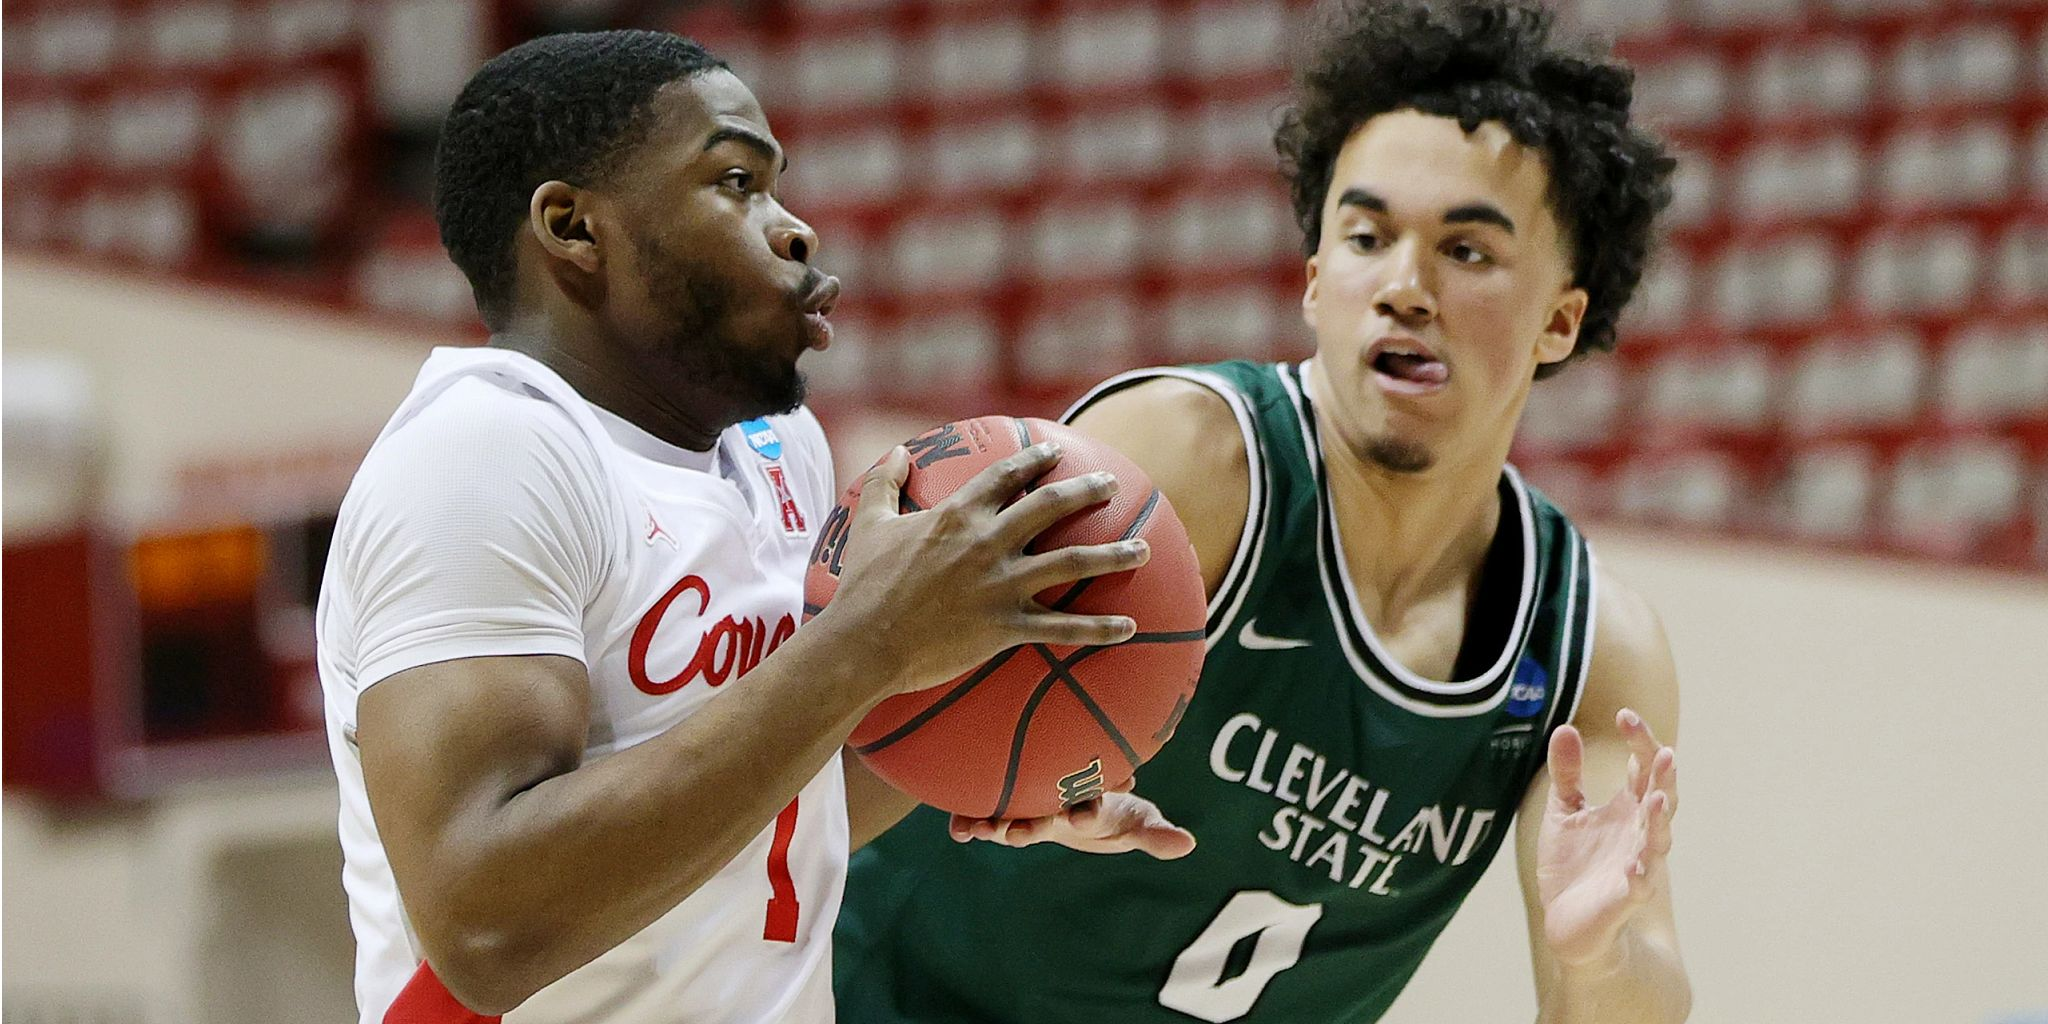 A Cleveland State player defends against a Houston player